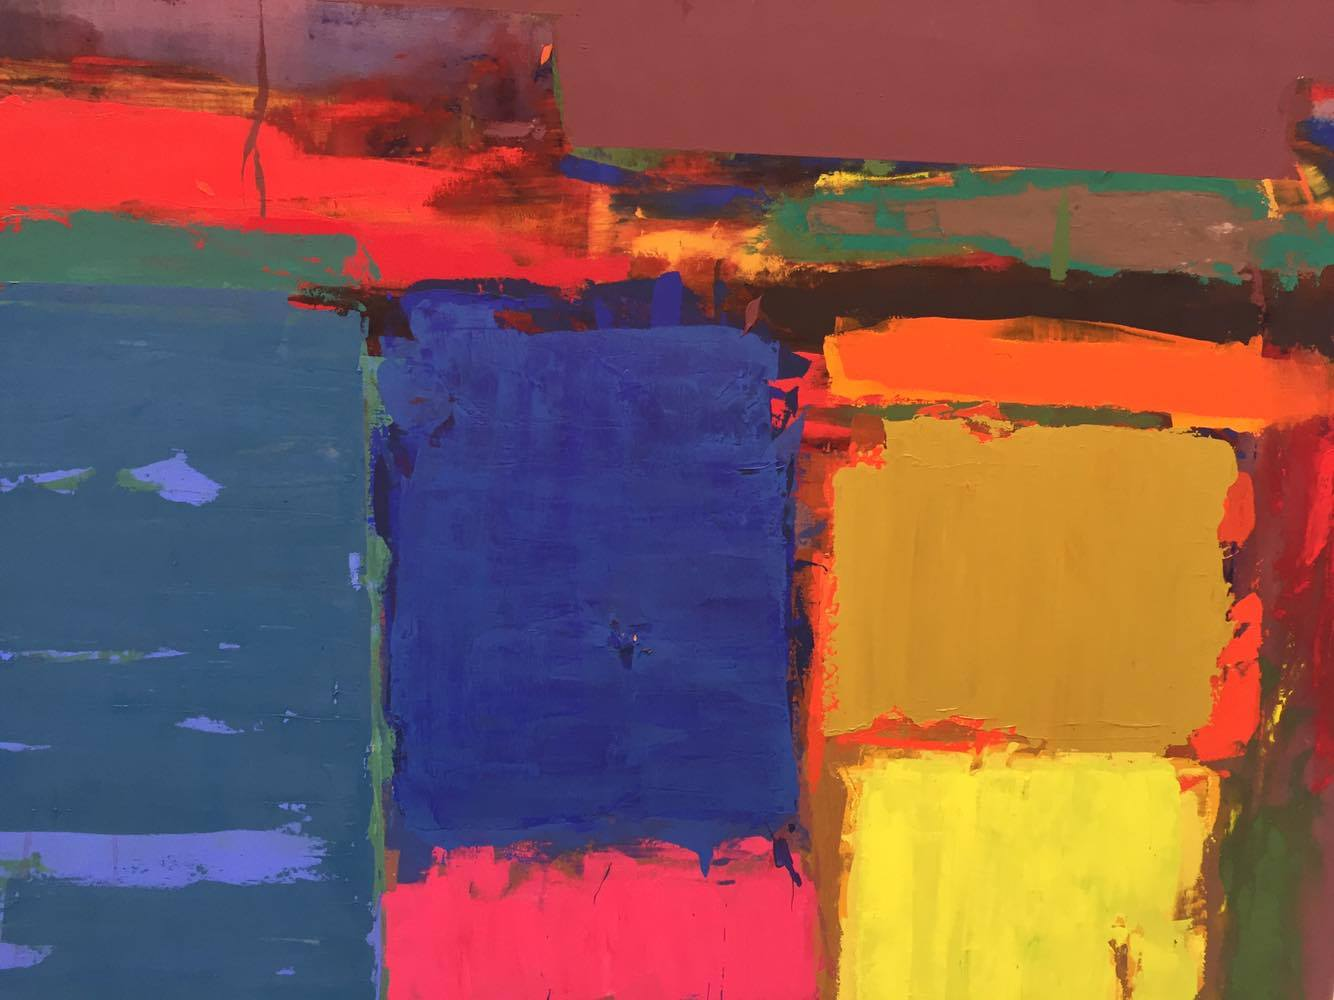 John Hoyland Power Stations Paintings 1964 1982 MIGLE SAVEIKYTE